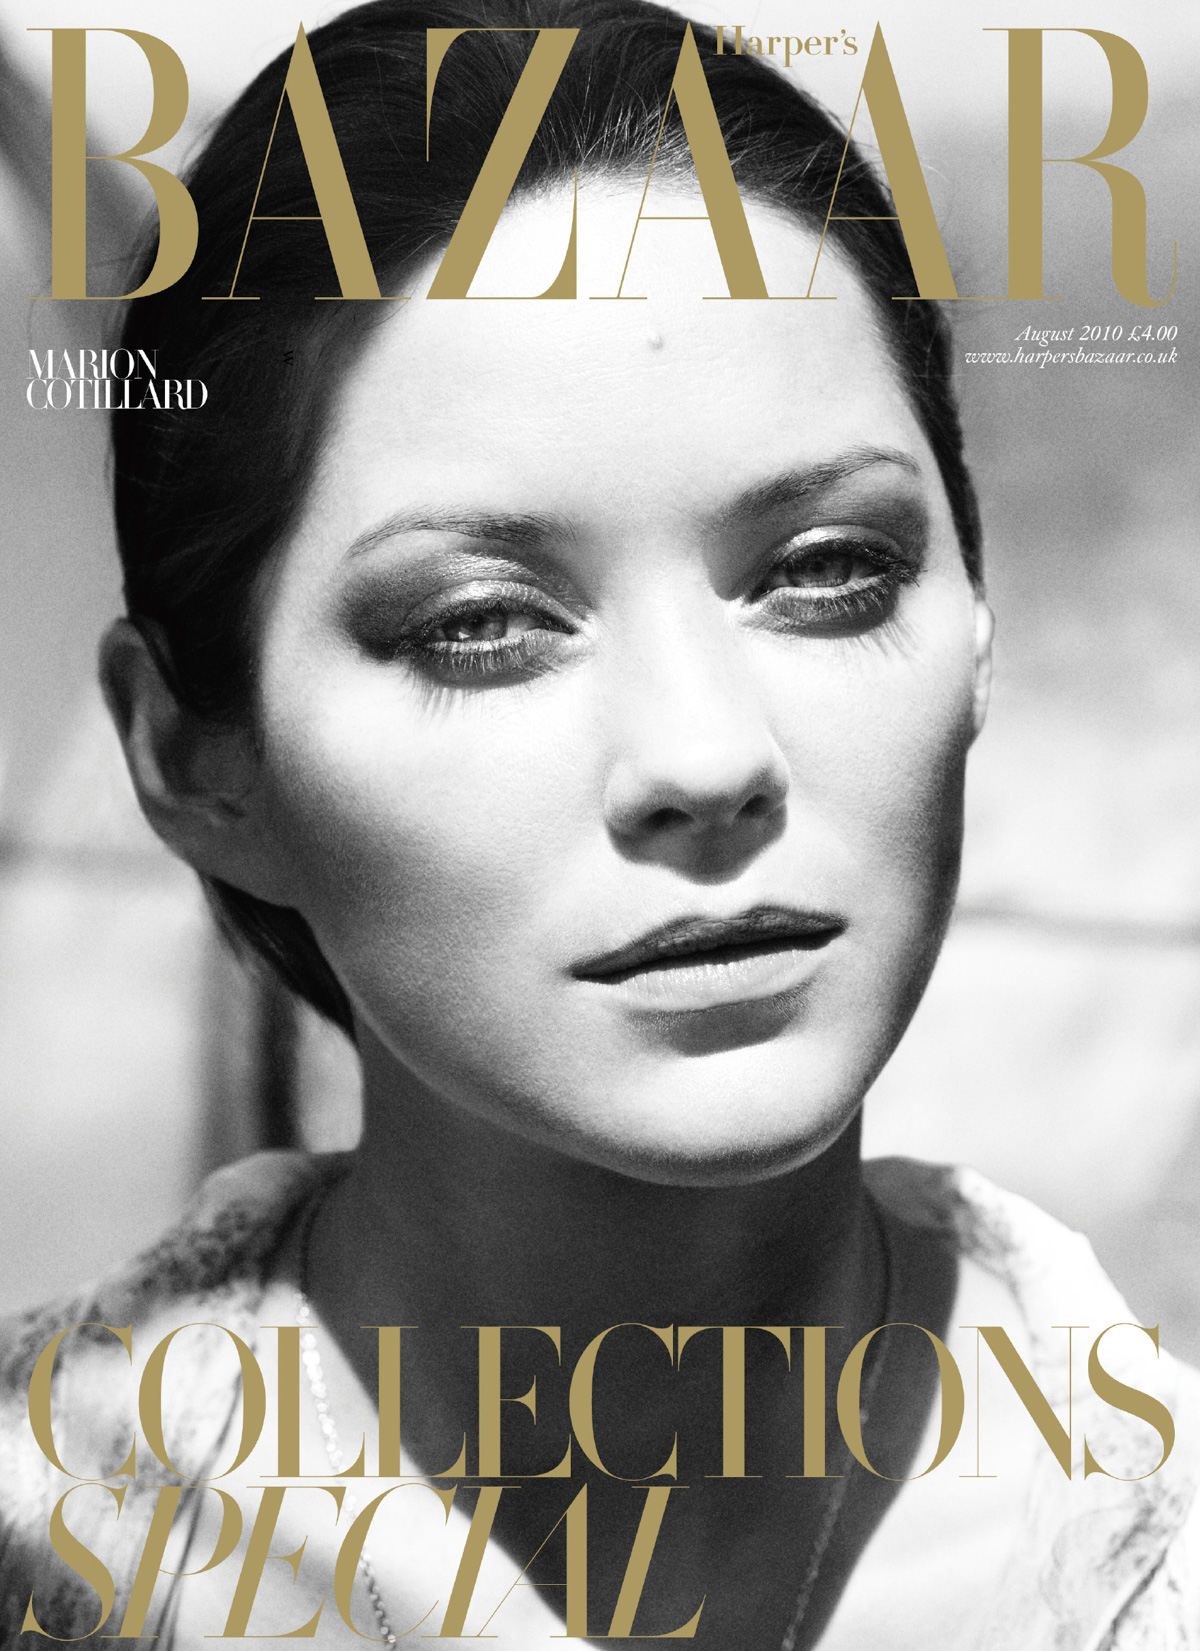 house-of-usher-harpers-bazaar-magazine-27